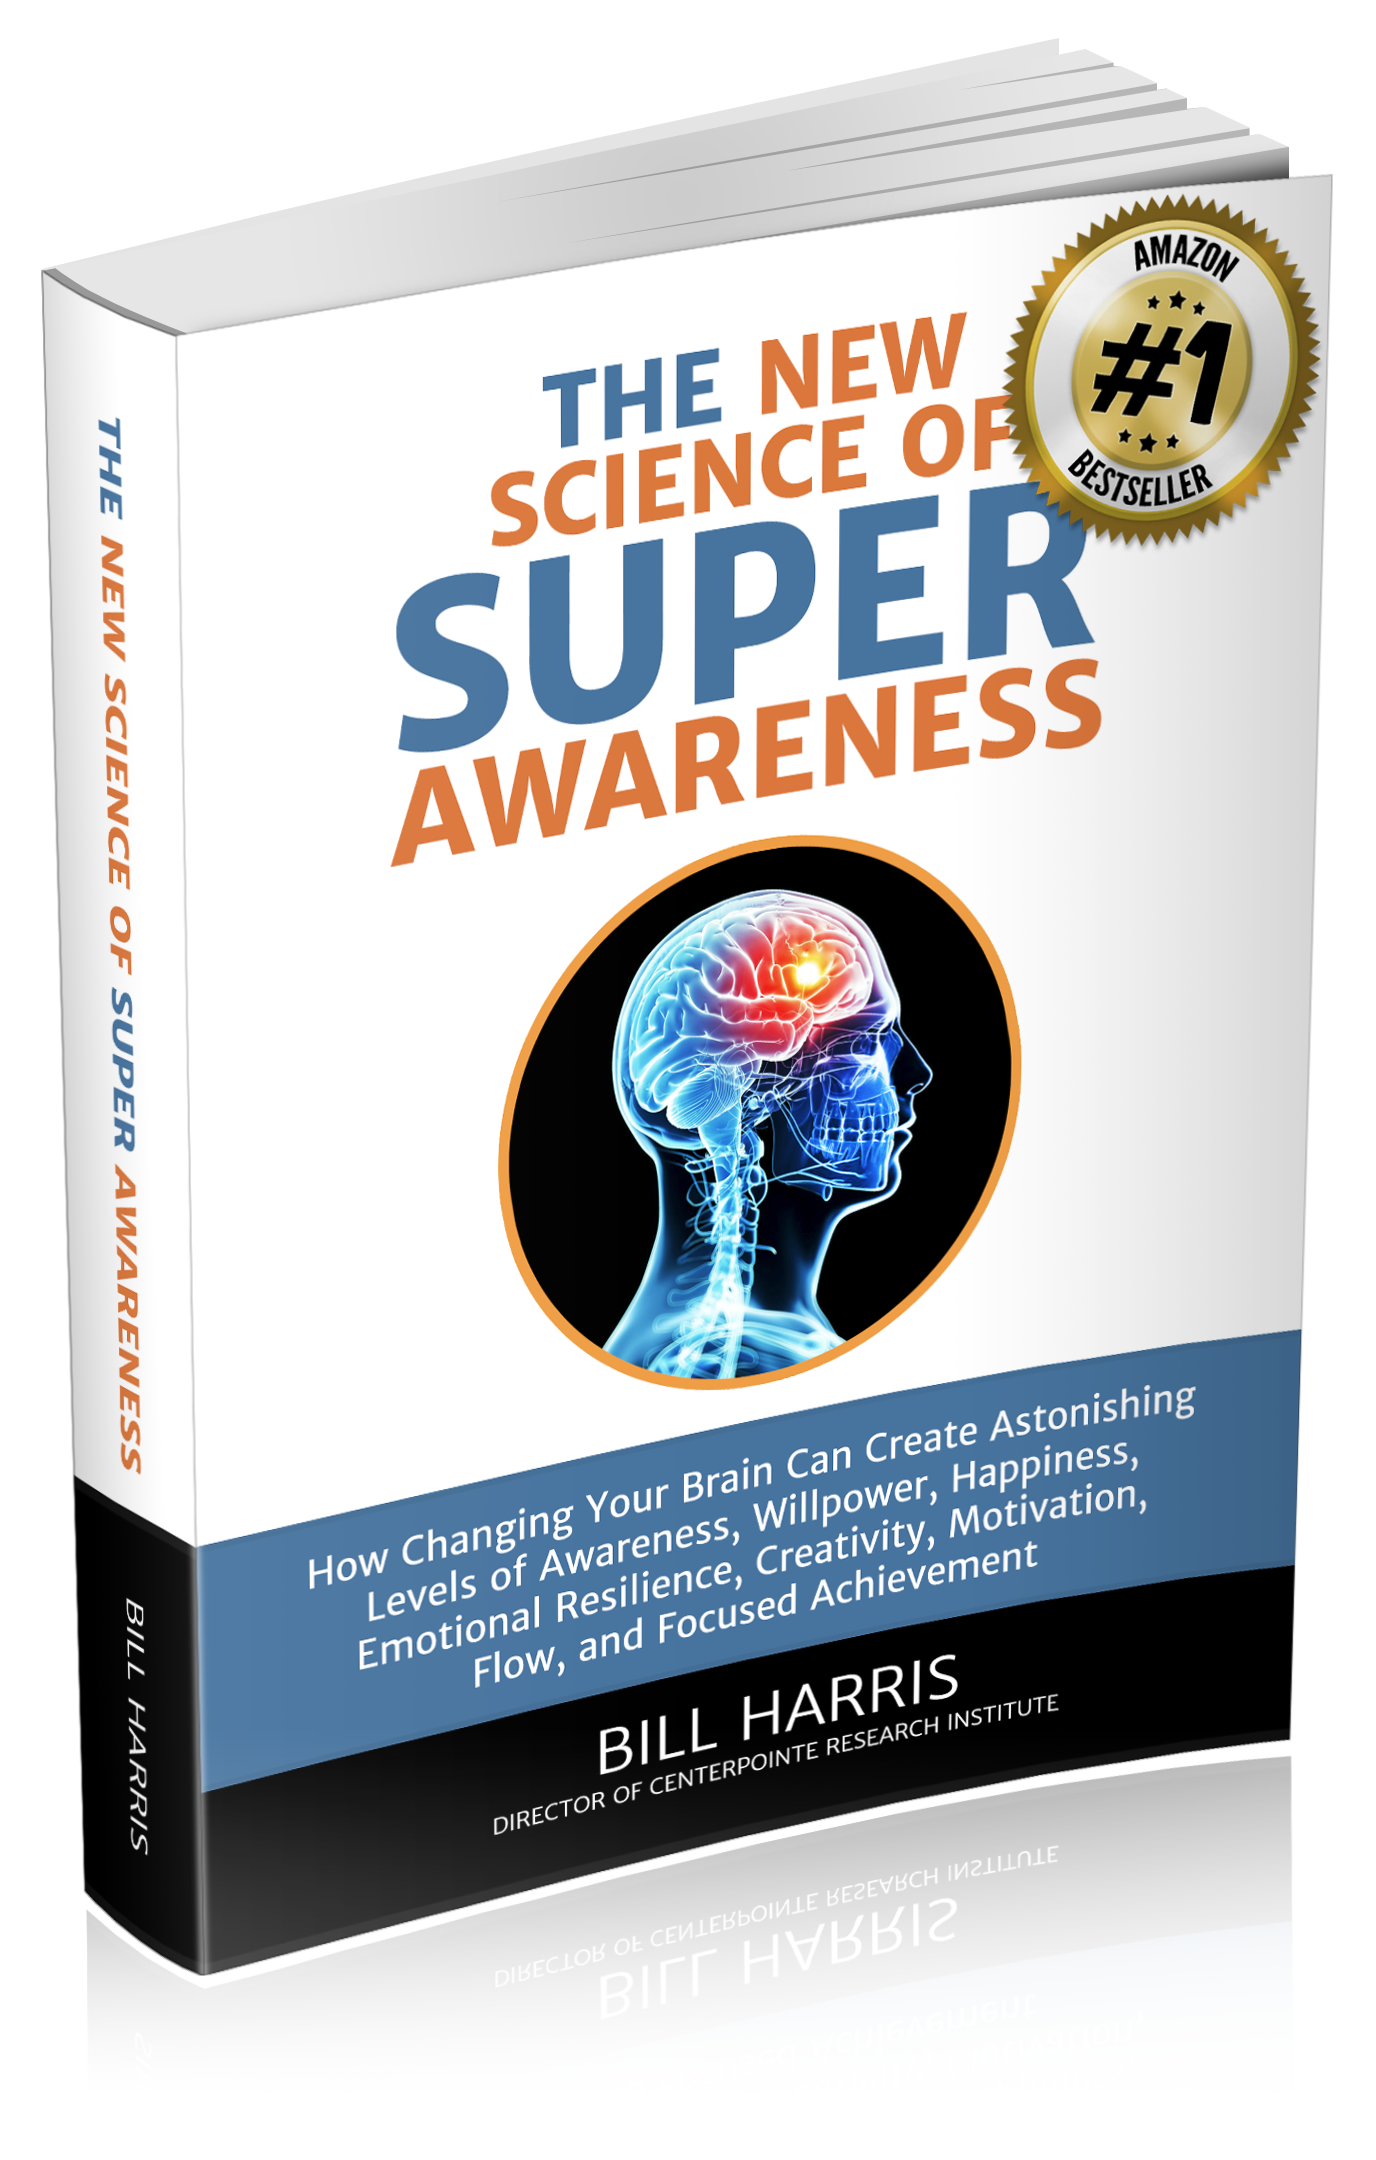 The New Science Of Super Awareness By Bill Harris Audio Version Holosync Meditation Technology Brain Wave Traini Emotional Resilience Awareness Brain Waves